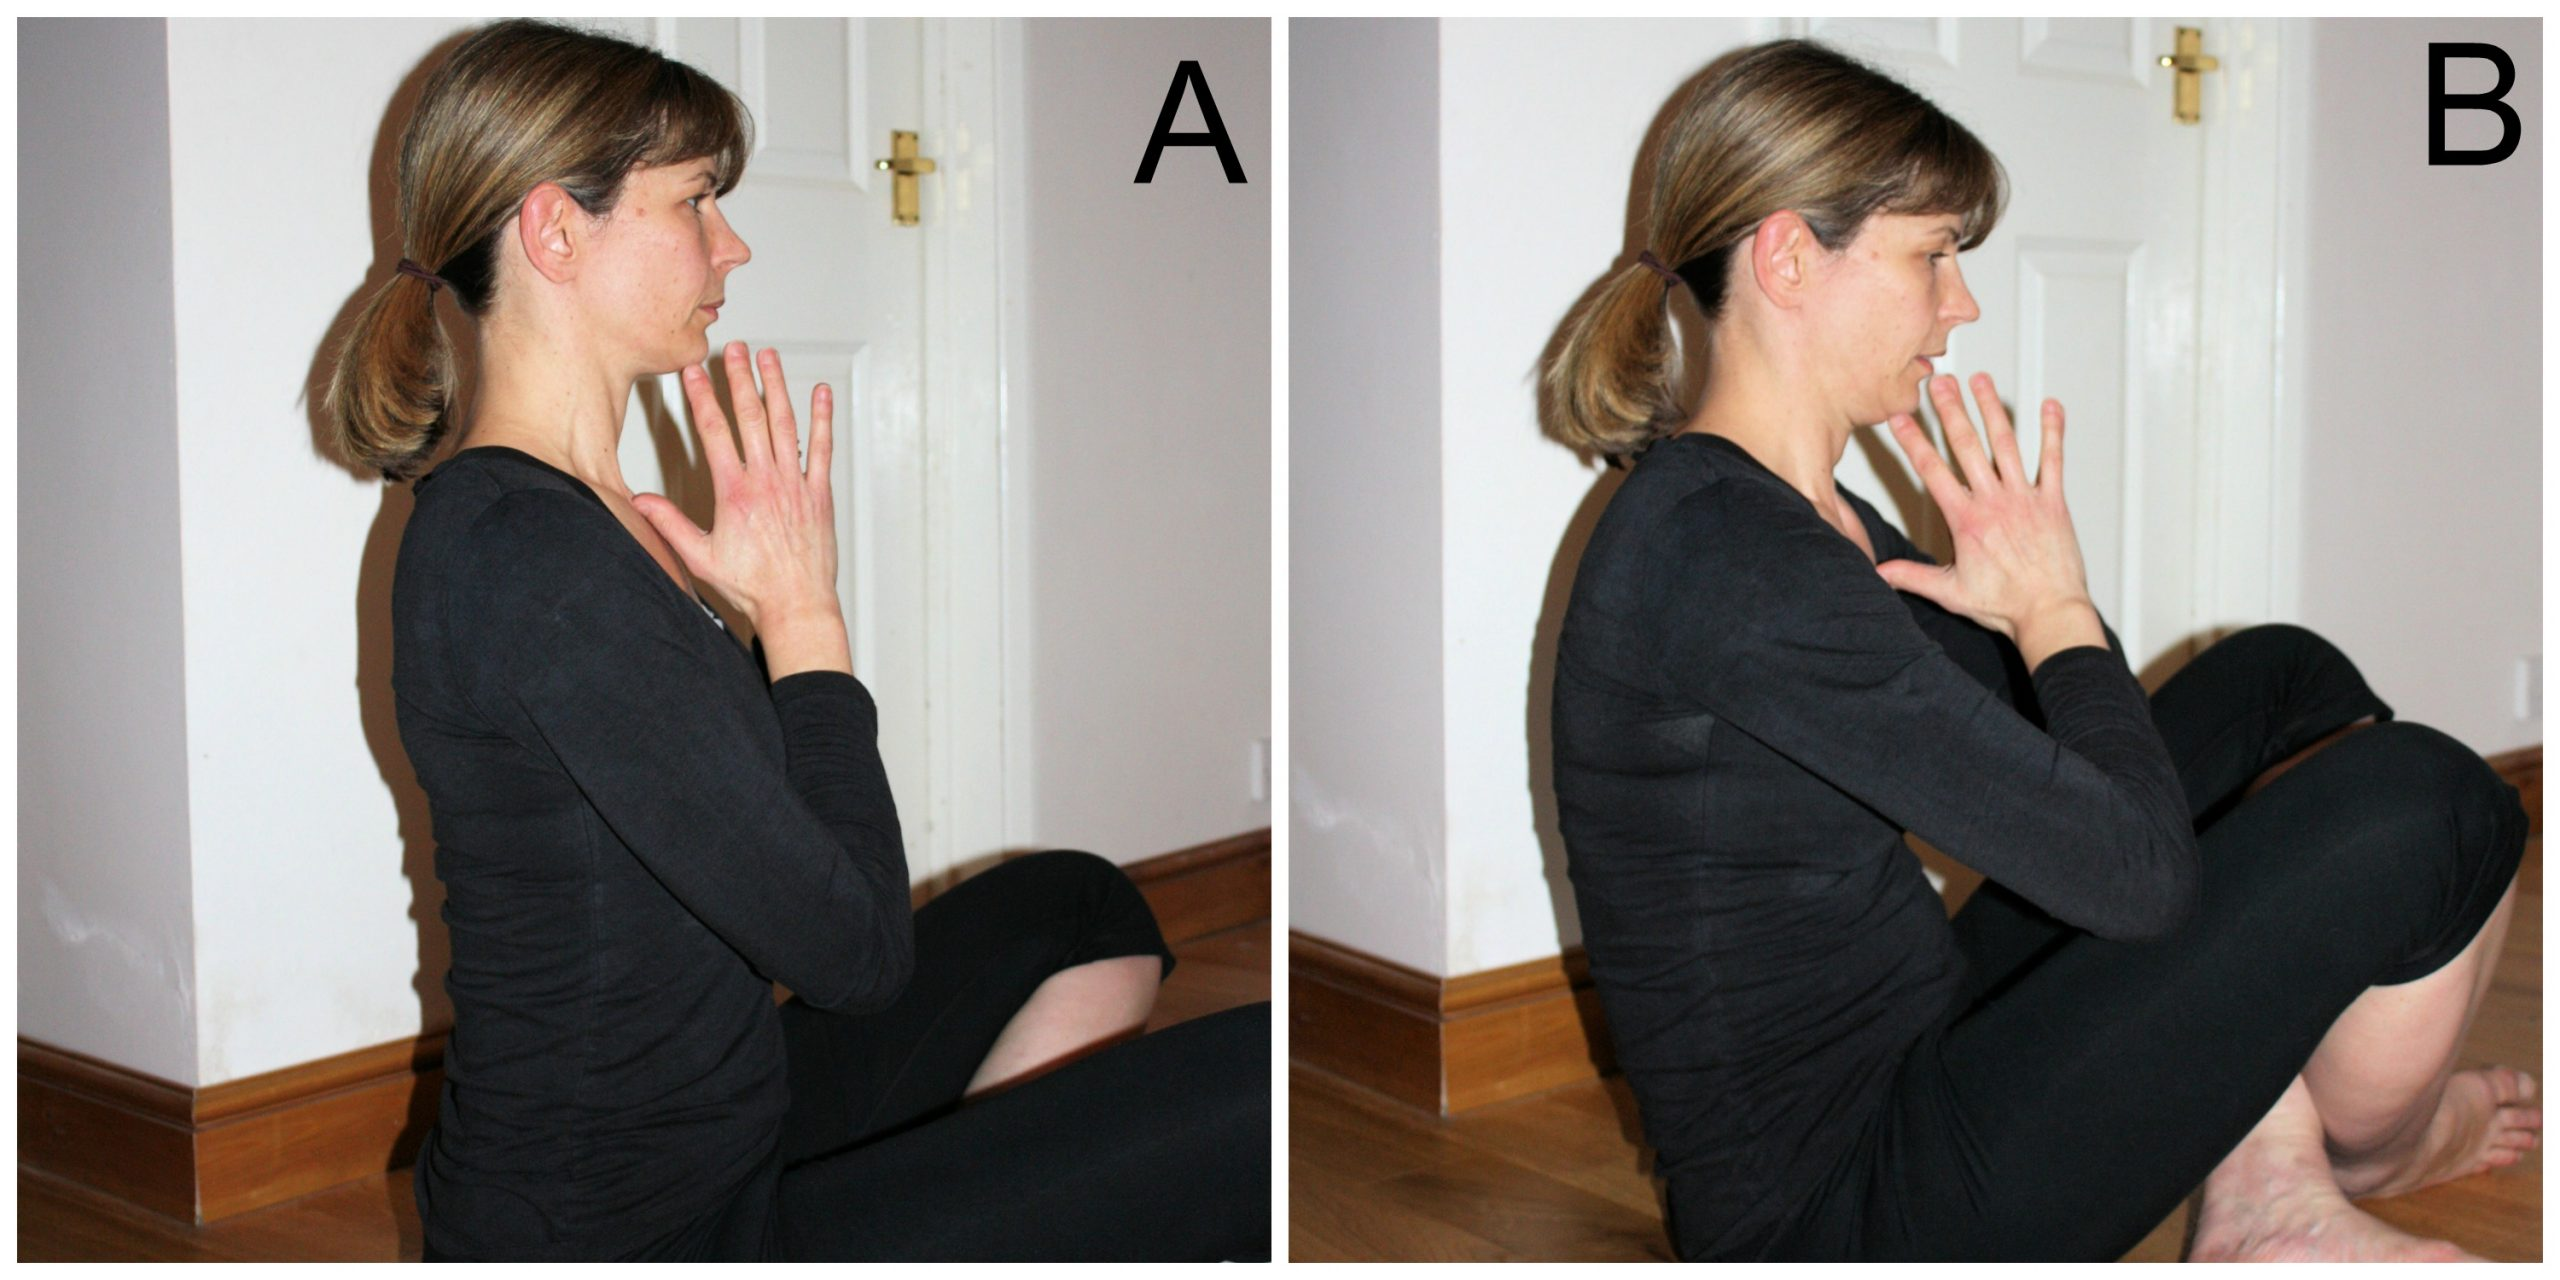 Move Your Spine – The Spine Twist